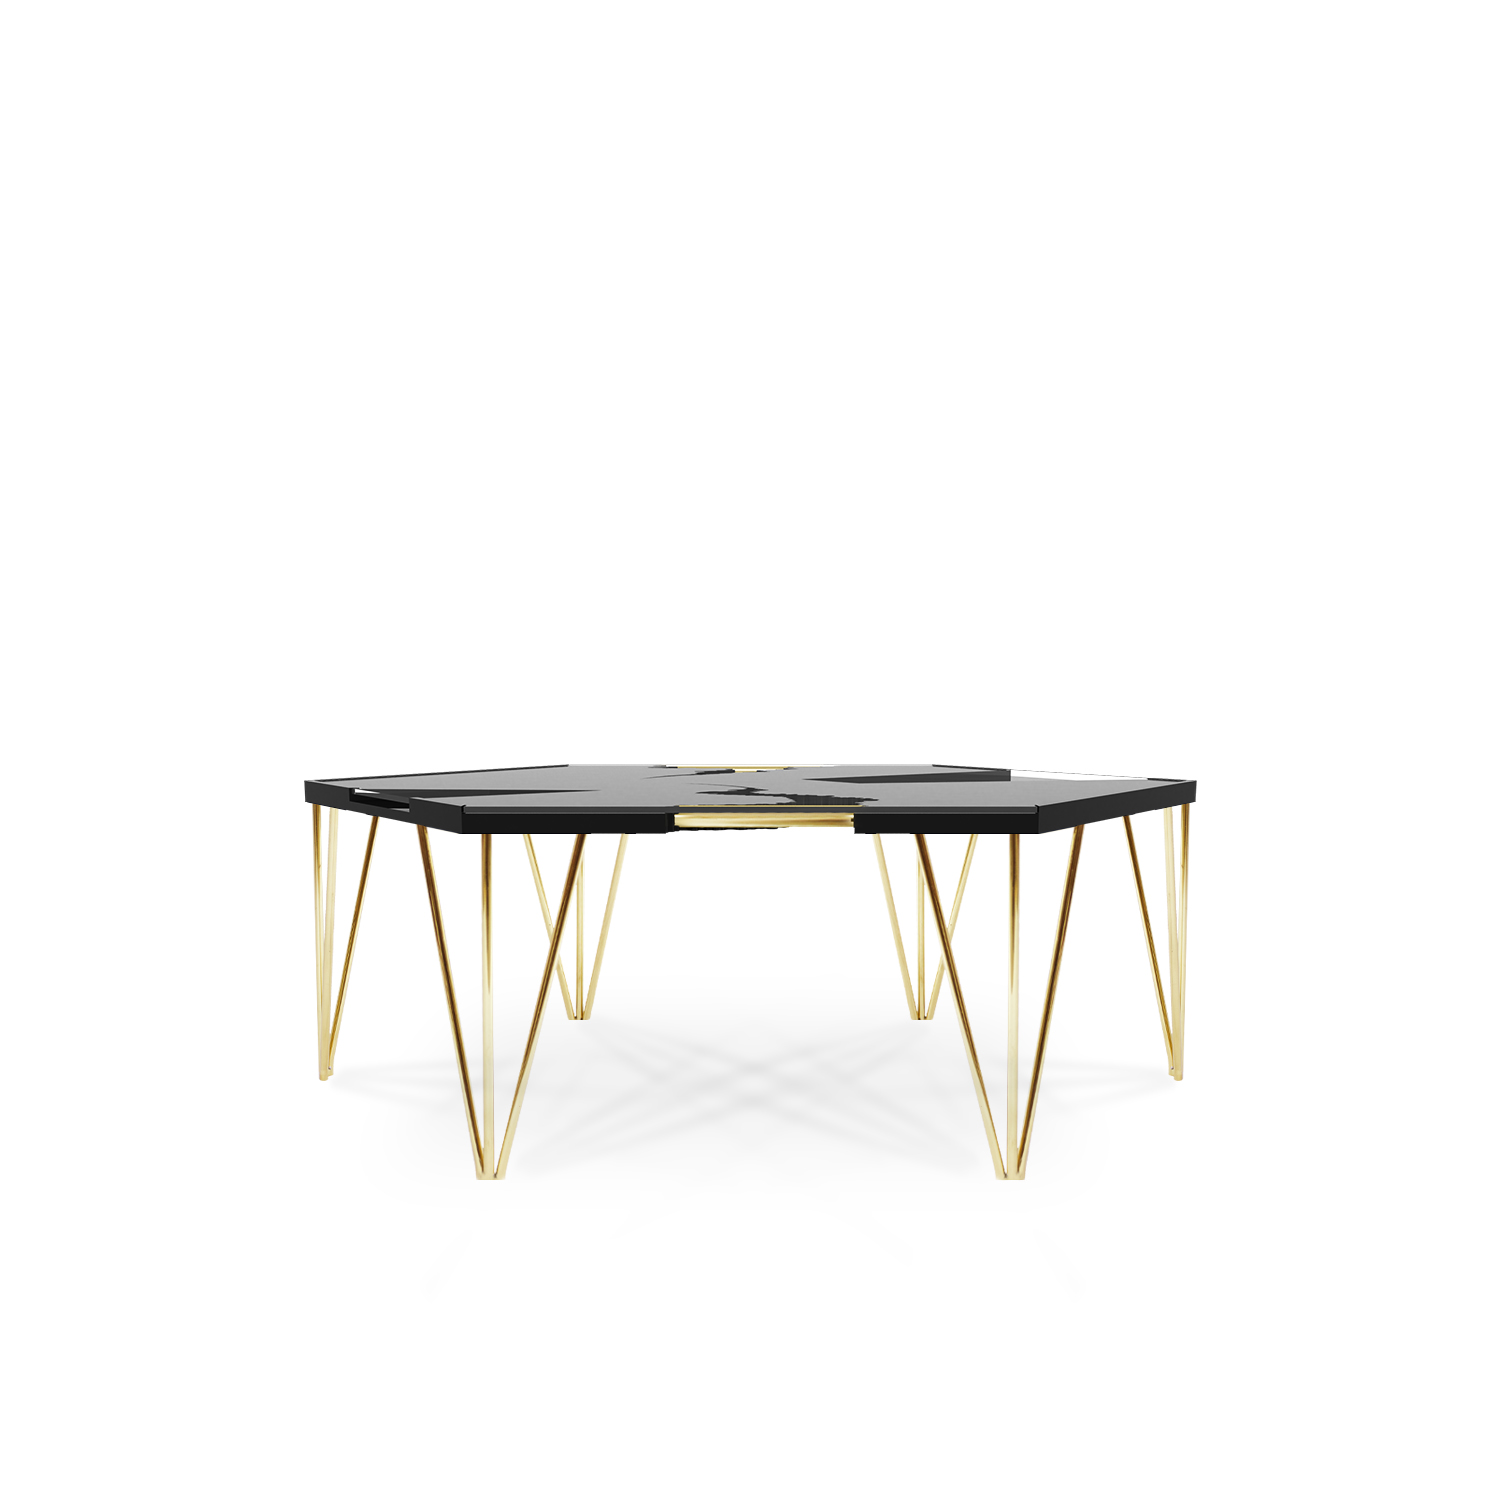 Curio Coffee Table Images Small Dining Room Decorating  : hurricane contemporary center coffee table polished brass black lacquered wood tempered glass bitangra furniture design 01 from favefaves.com size 1500 x 1500 jpeg 273kB